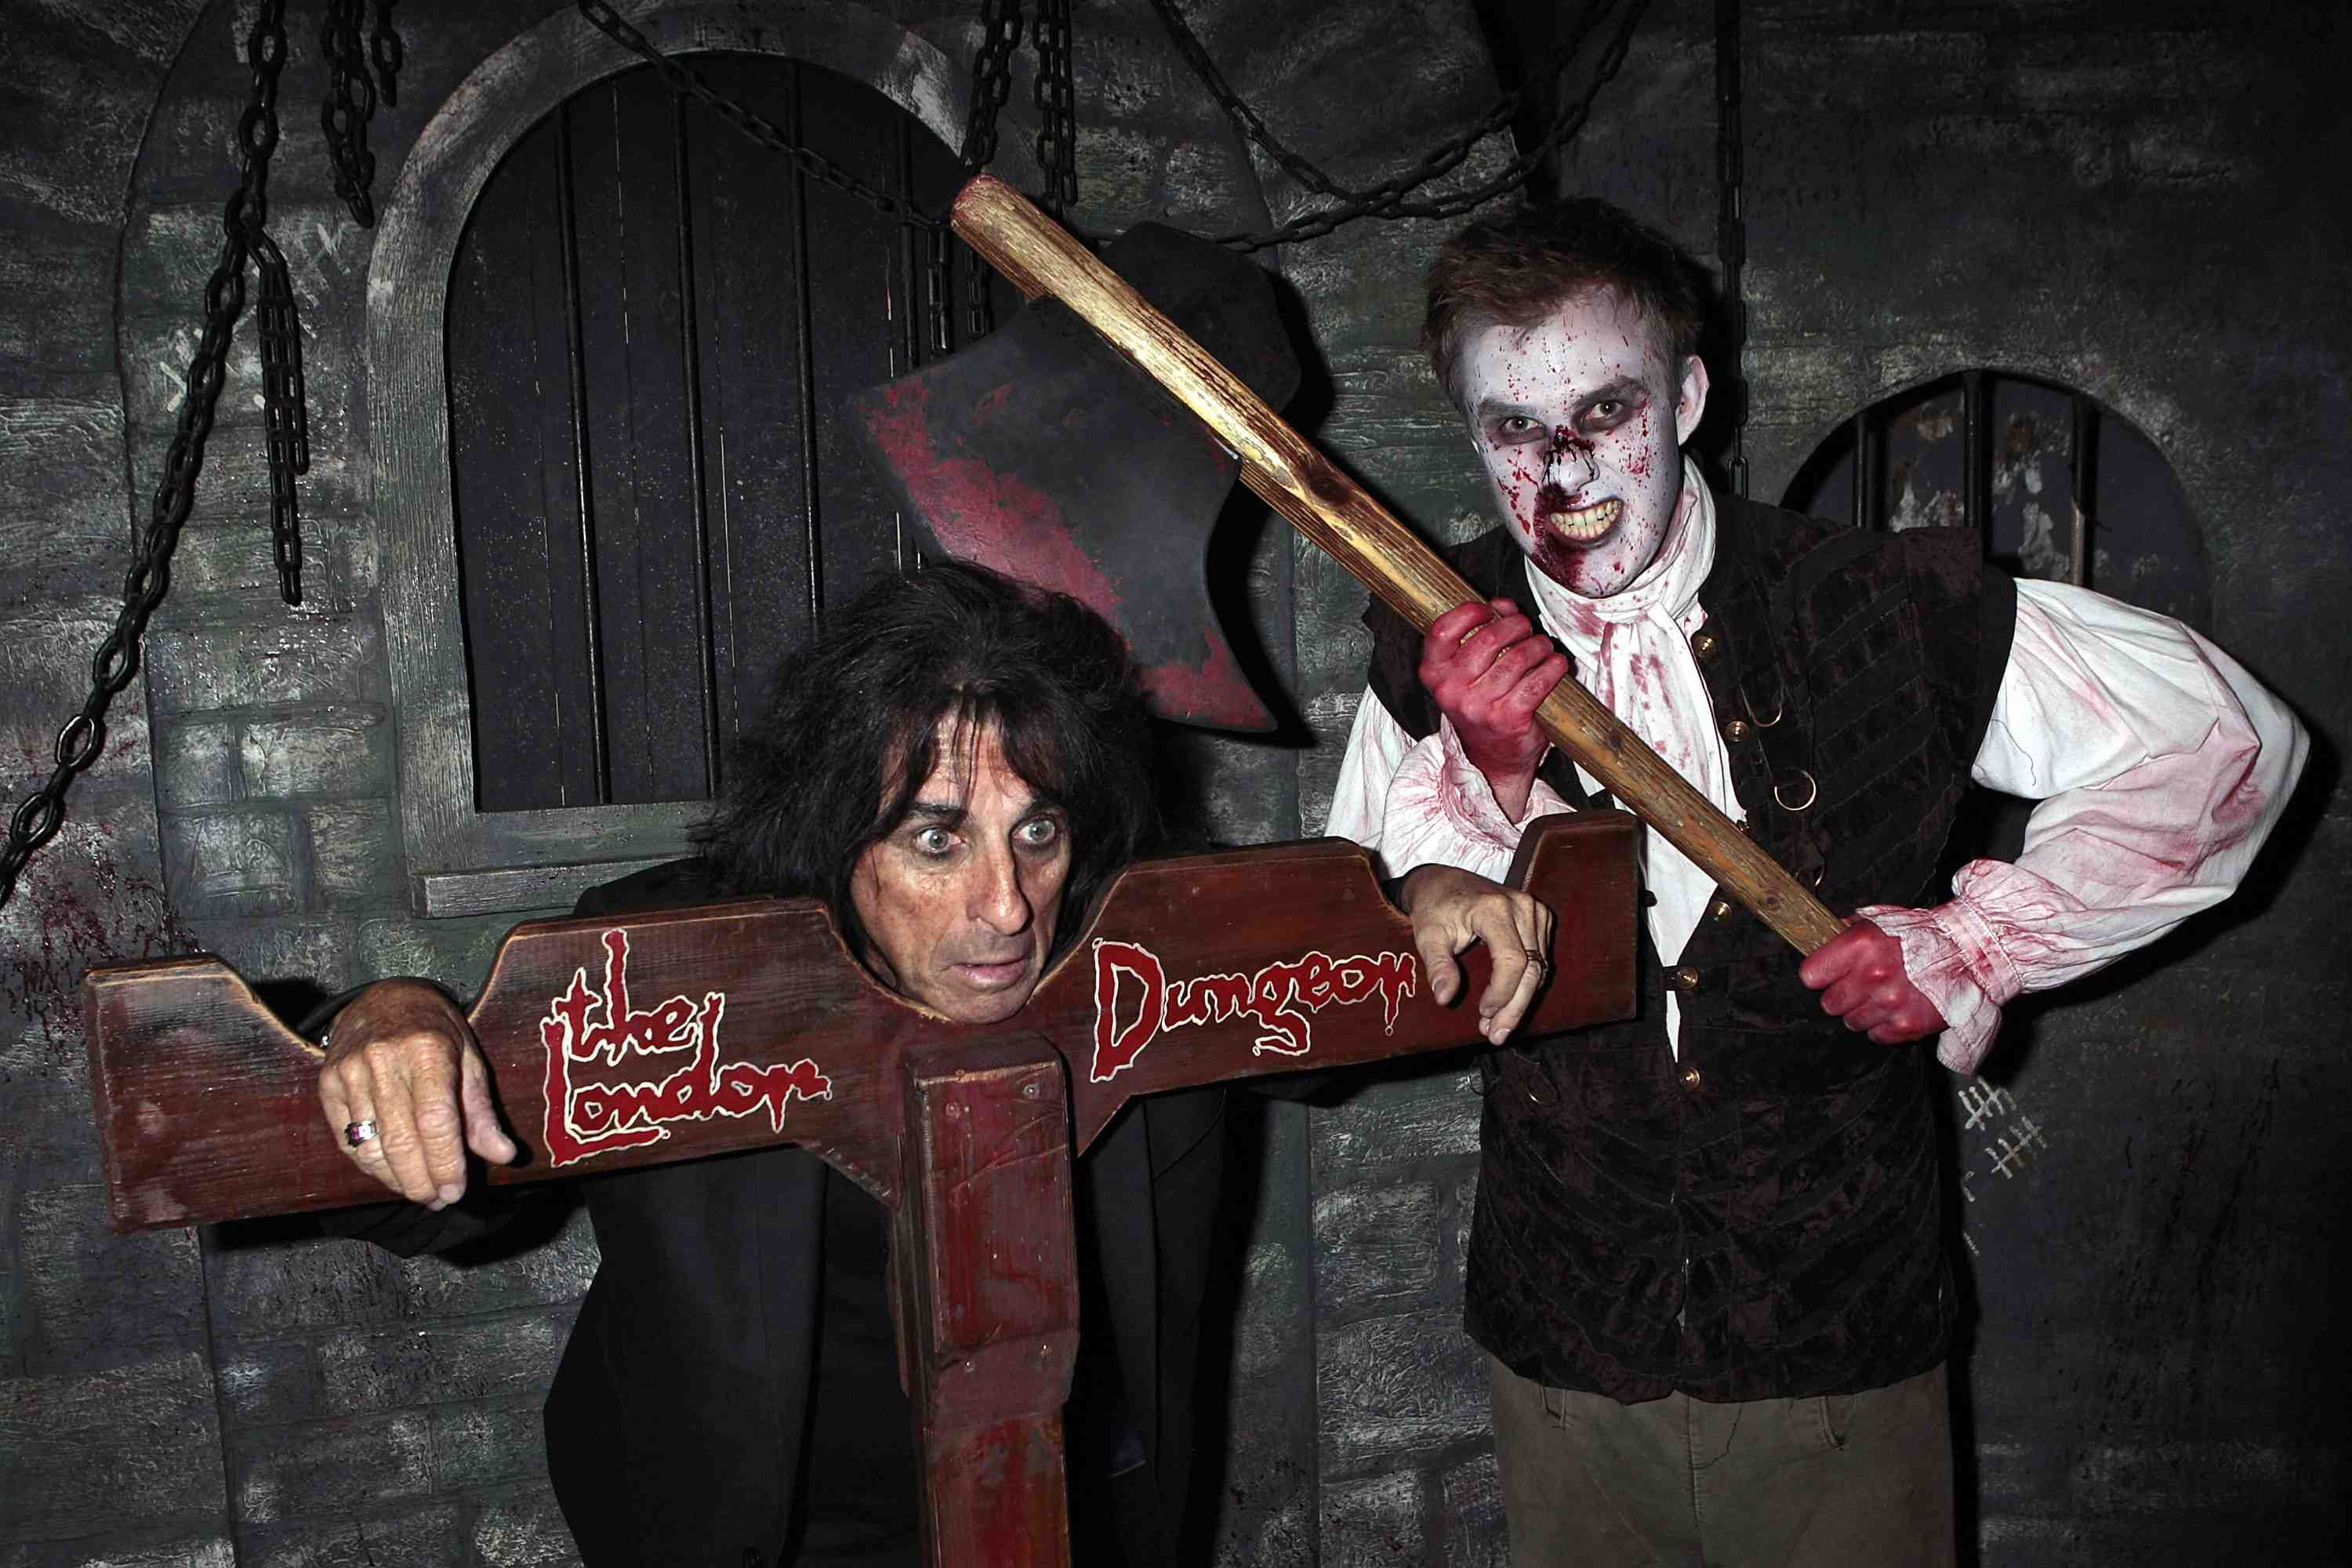 Win A Family Ticket To London Dungeons A Boy With Asperger S